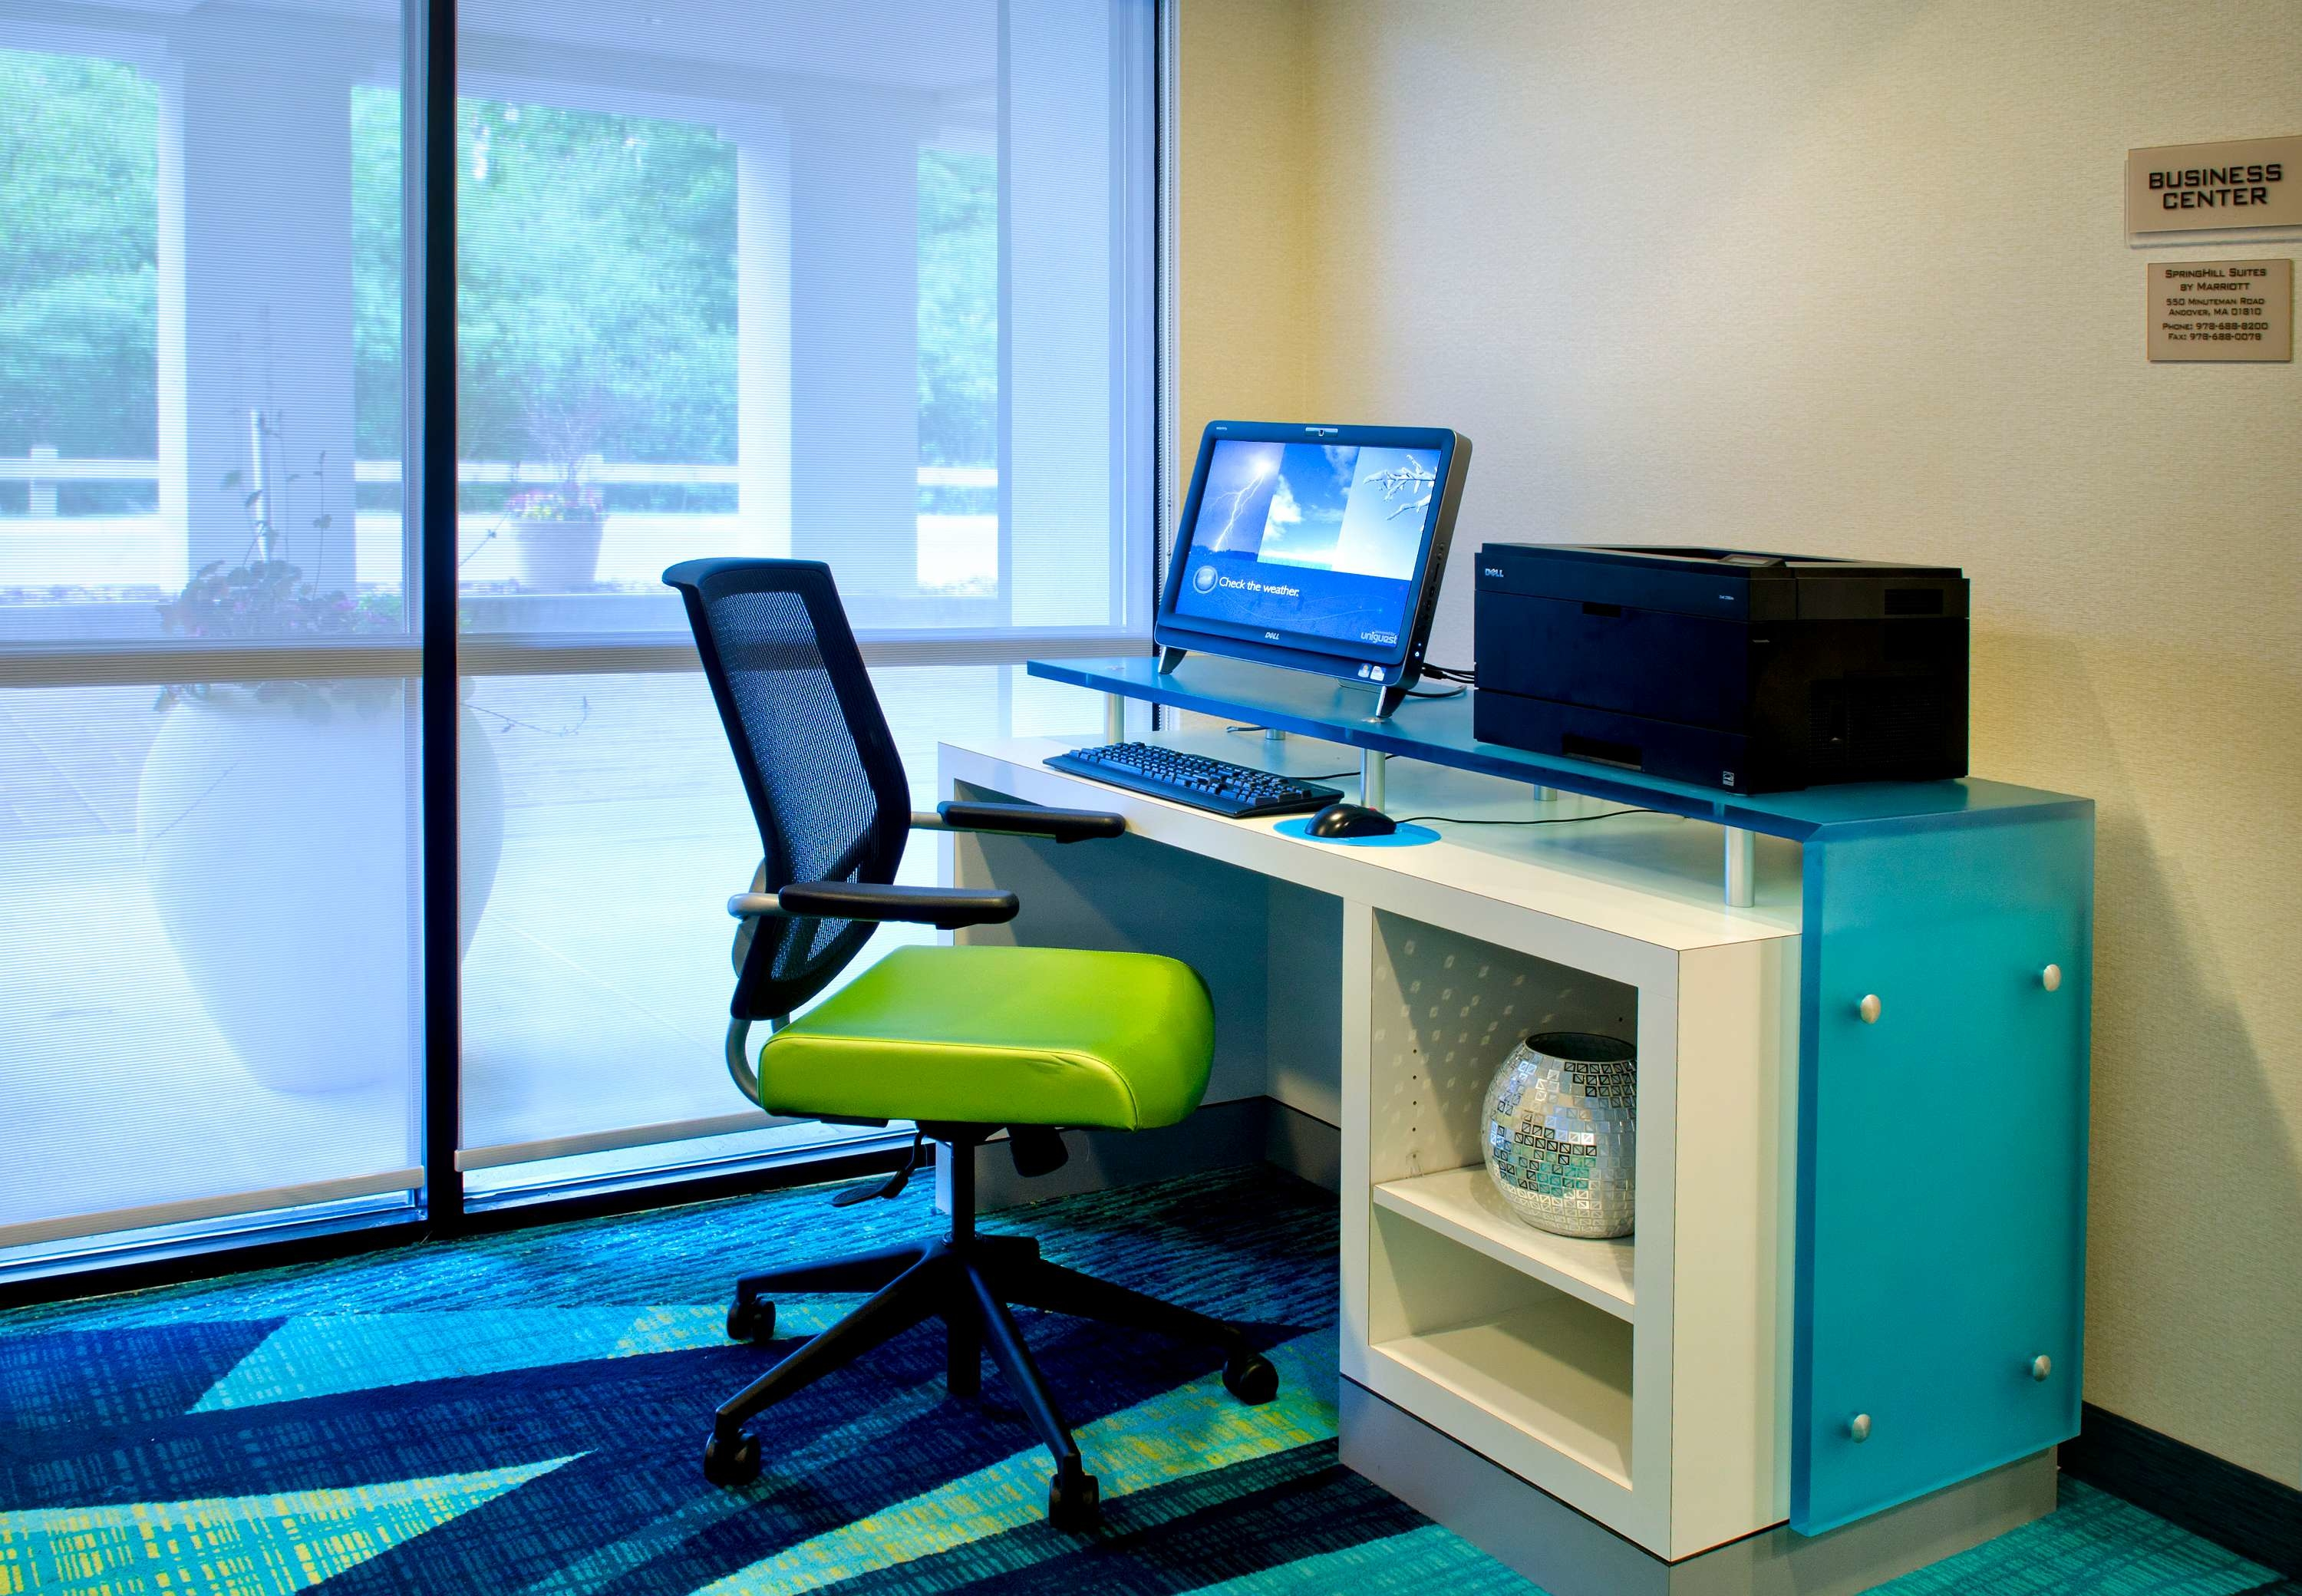 SpringHill Suites by Marriott Boston Andover image 11